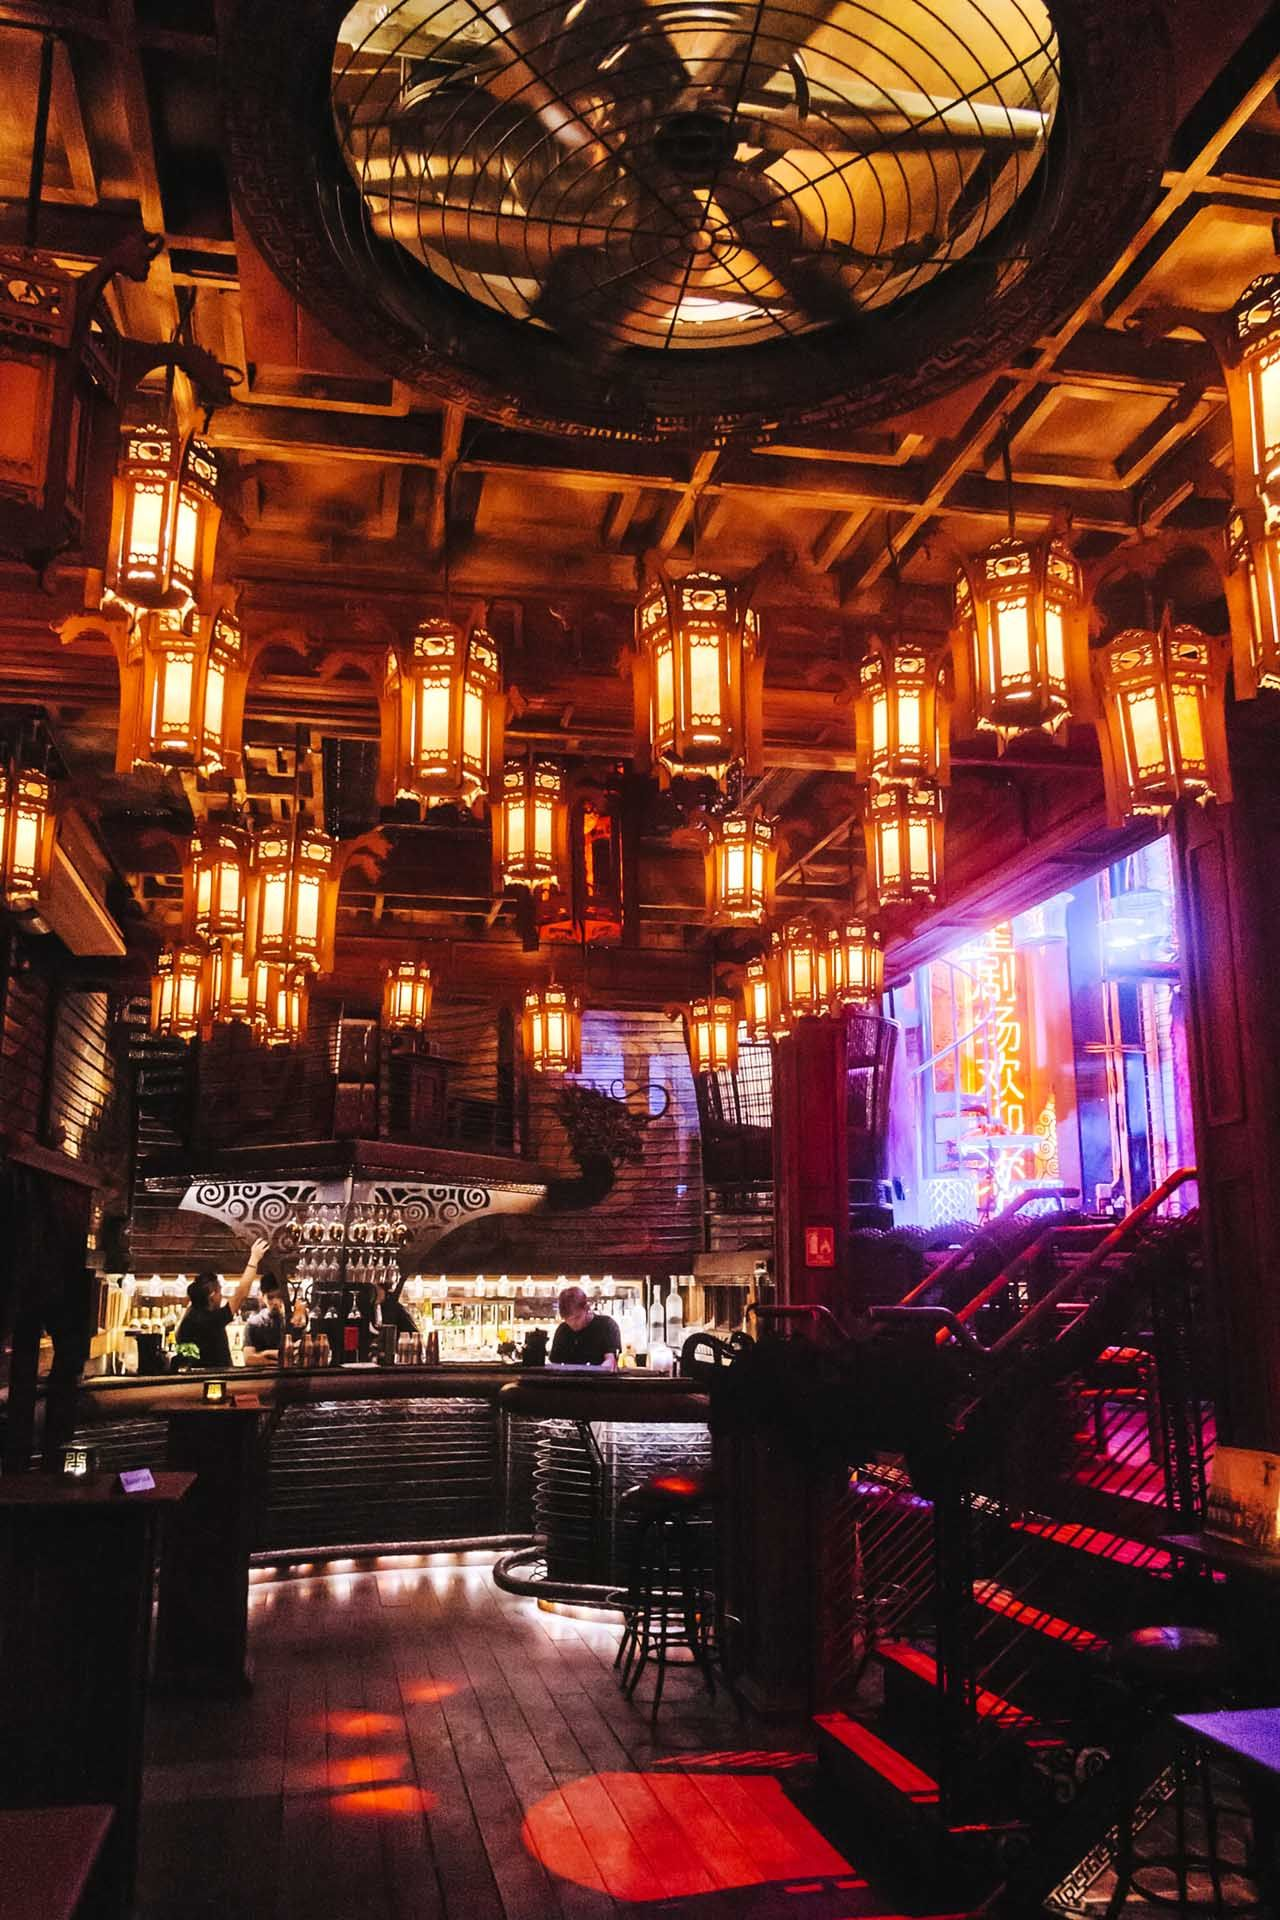 Sing Sing Theater Ashley Sutton S Bangkok Interior Design Marvel Ash Sutton S Latest Night Club And Inter Theatre Interior Ashley Sutton Bar Design Restaurant